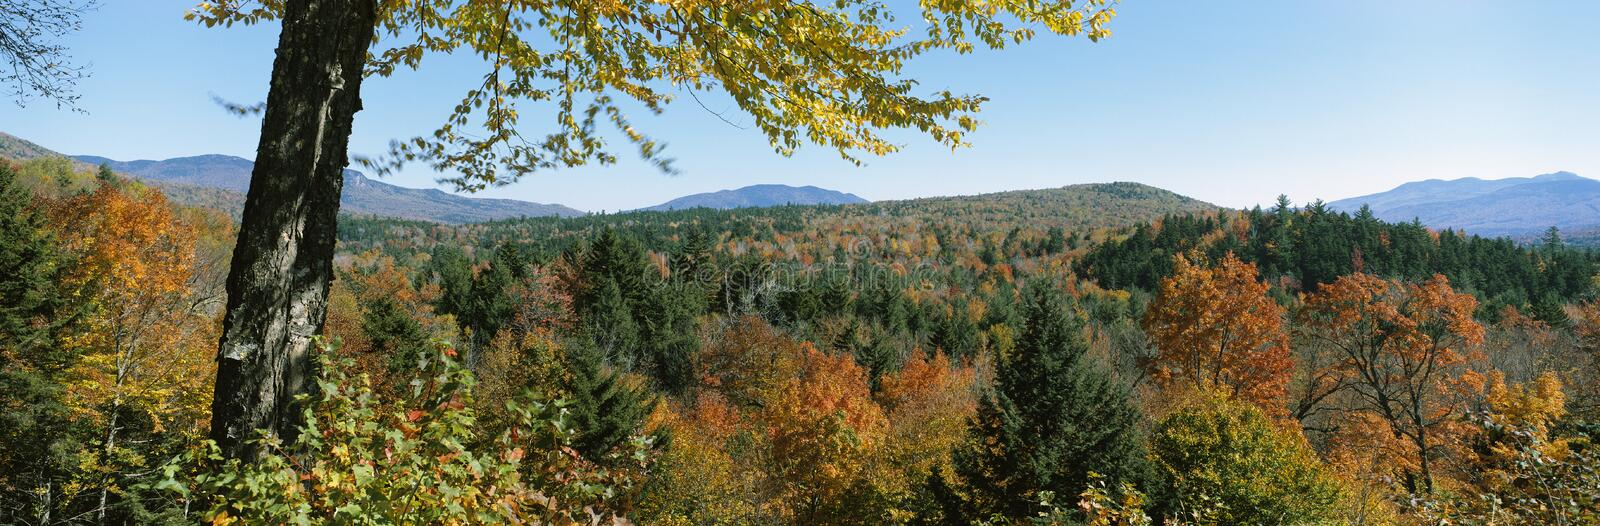 Fall color in White Mountains, New Hampshire, USA royalty free stock image